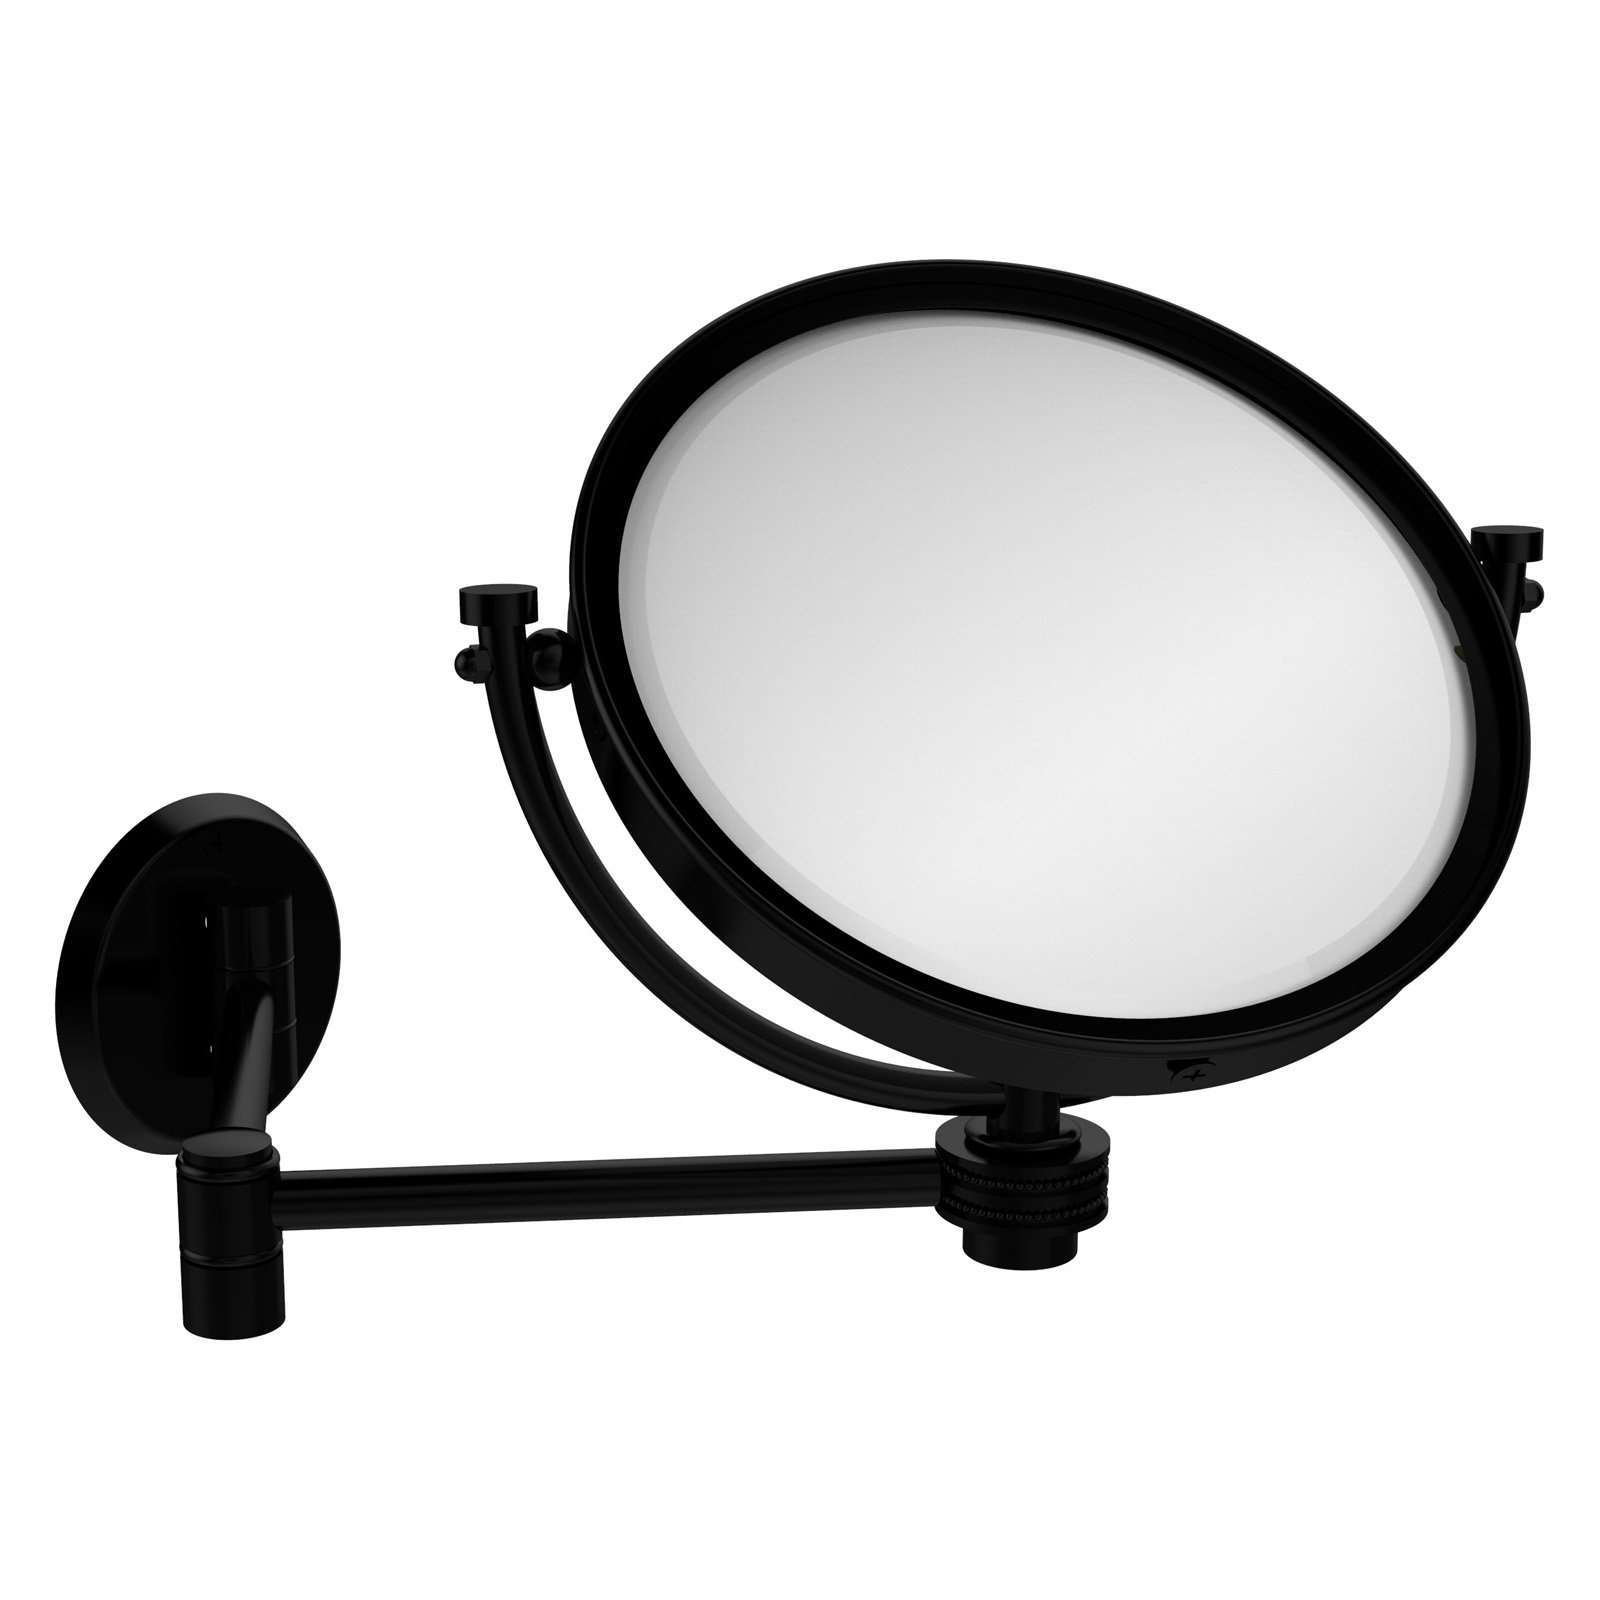 Extending Wall Mirrors Throughout Best And Newest Allied Brass 8 In. Wall Mounted Extending Makeup Mirror 5X (Gallery 6 of 20)